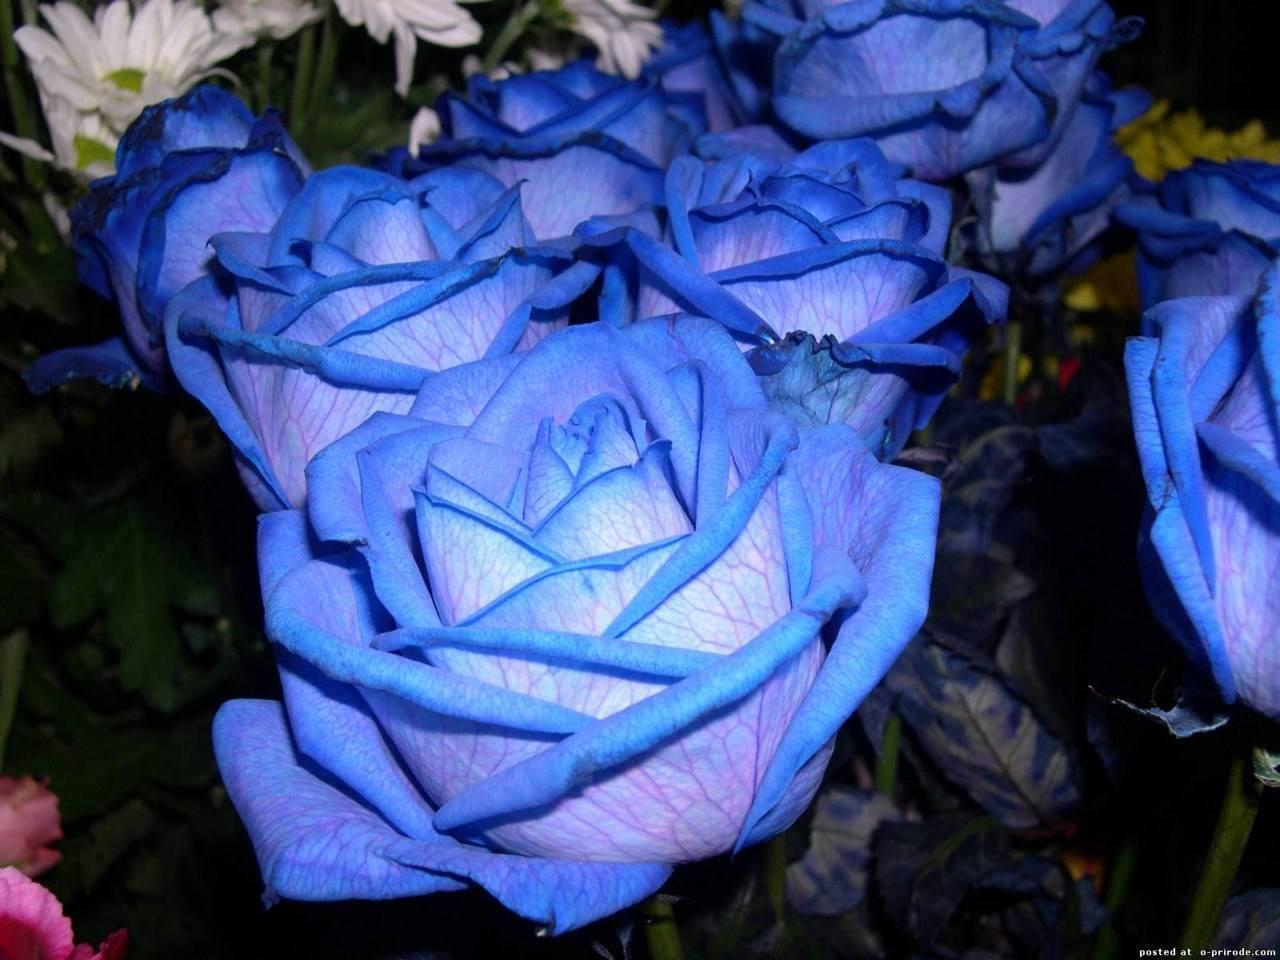 50Pcs Blue Rose Seeds Blue Lover Rose Seeds DIY Home Garden Dec Bonsai Pla